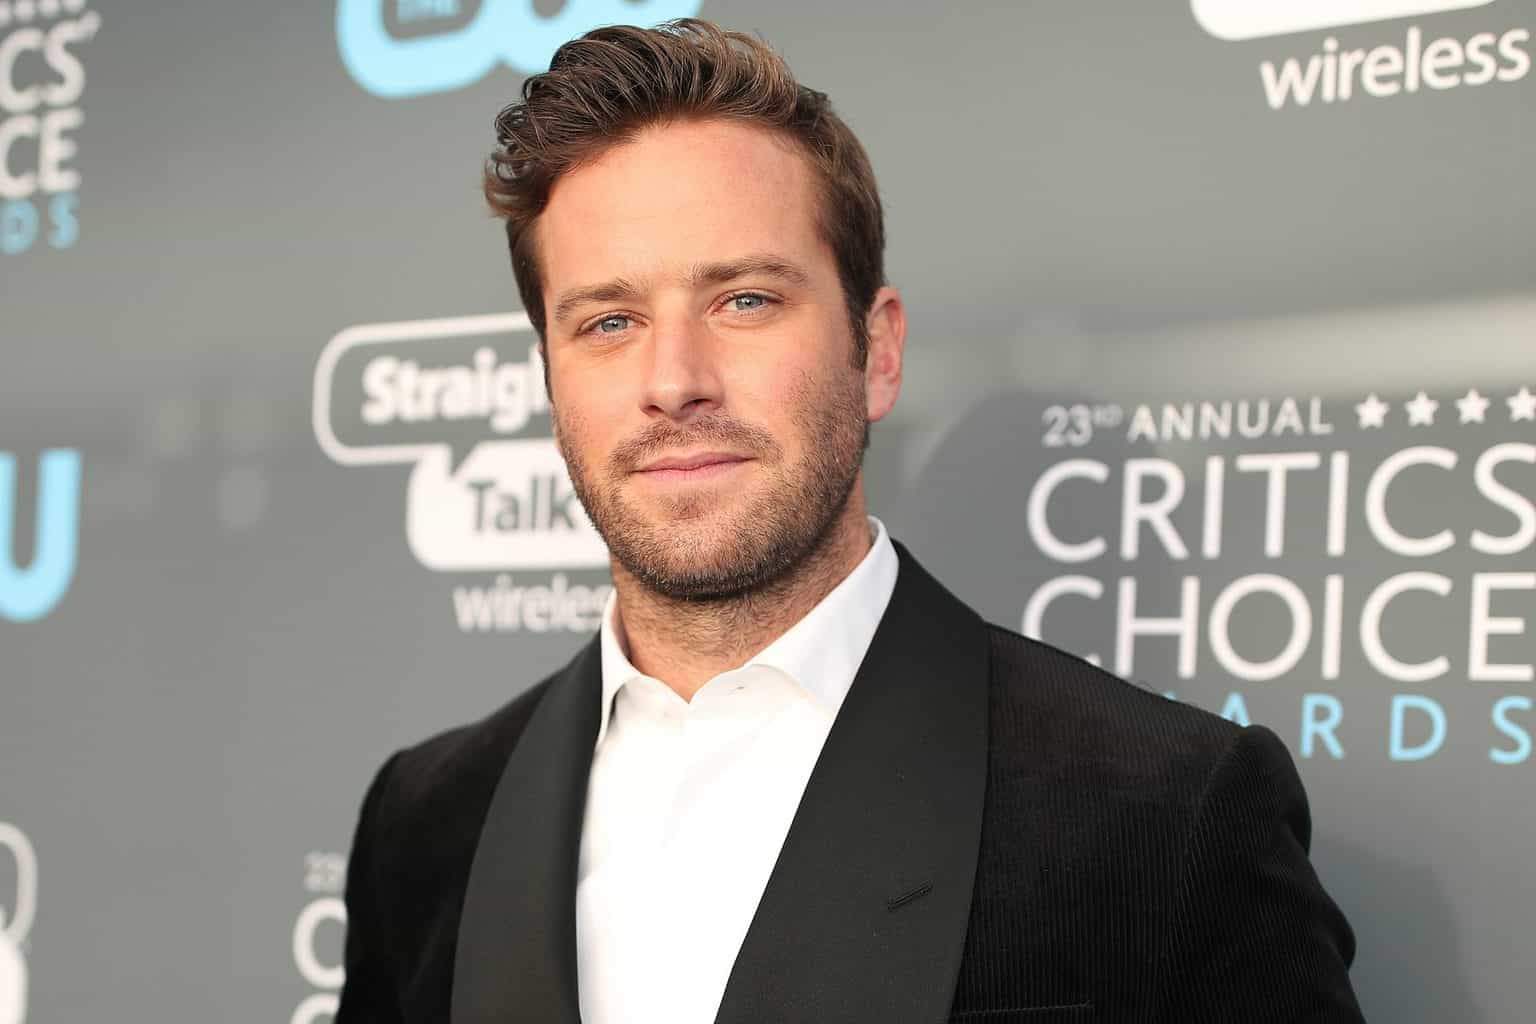 Armie, Cap, Kevin Feige: Weekly Round Up